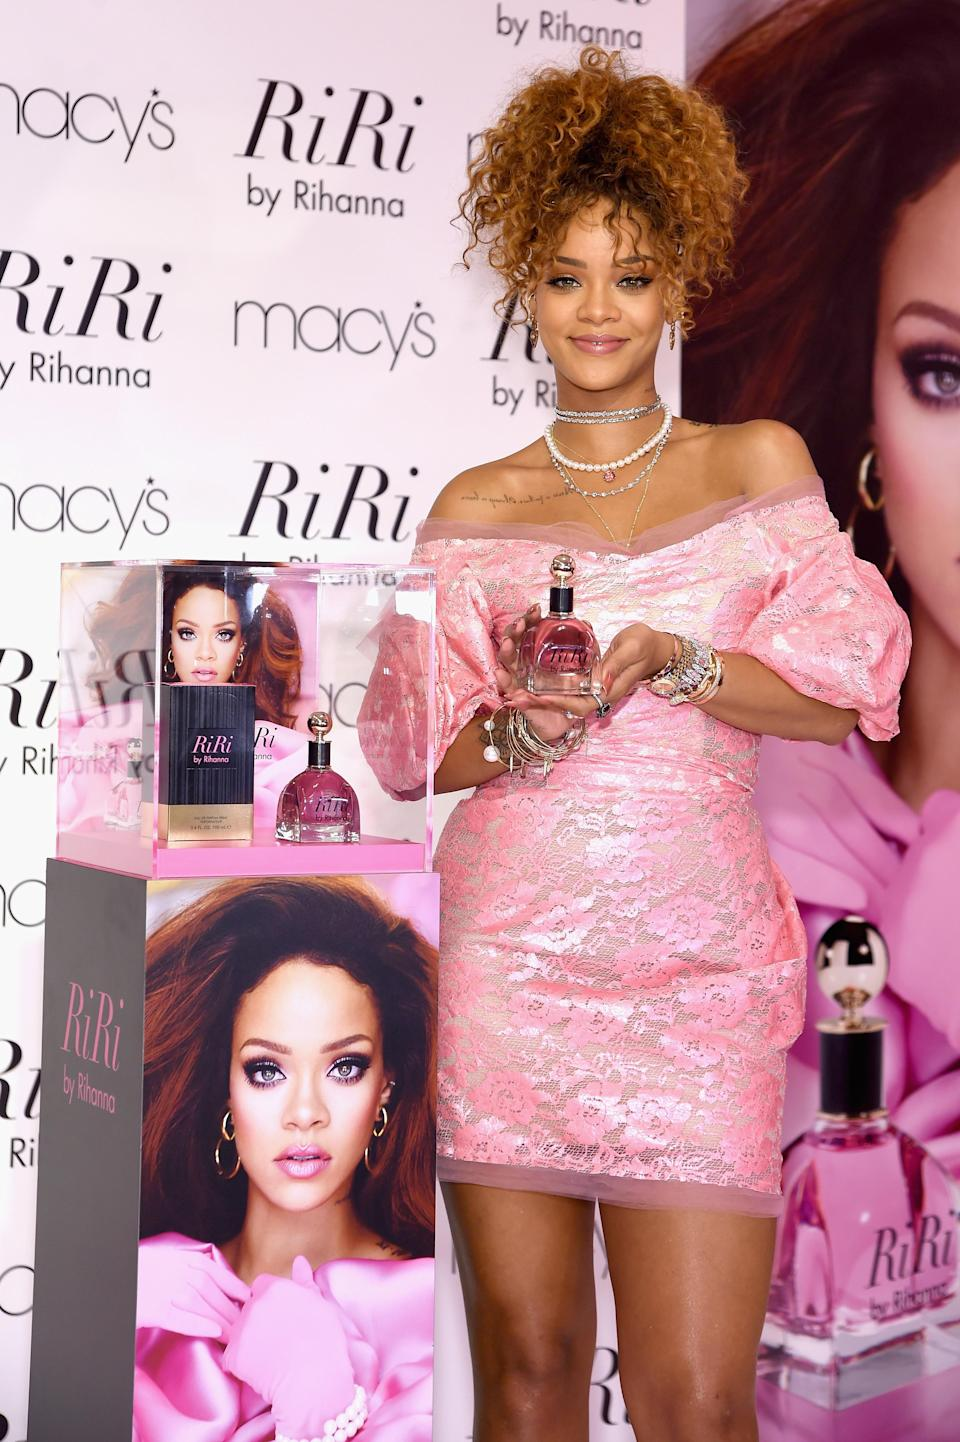 """<p>Rihanna has so far released four perfumes; the first being Reb'l Fleur in 2011. It was <a href=""""http://wwd.com/beauty-industry-news/fragrance/rihanna-rings-in-fragrance-sales-3597710/"""" rel=""""nofollow noopener"""" target=""""_blank"""" data-ylk=""""slk:expected to make £60 million"""" class=""""link rapid-noclick-resp"""">expected to make £60 million</a> in its first year although there are no official figures to confirm this. Her second, Rebelle, became the fastest selling celebrity fragrance in the UK, selling over two million bottles in just six months.<br><i>[Photo: Getty]</i> </p>"""